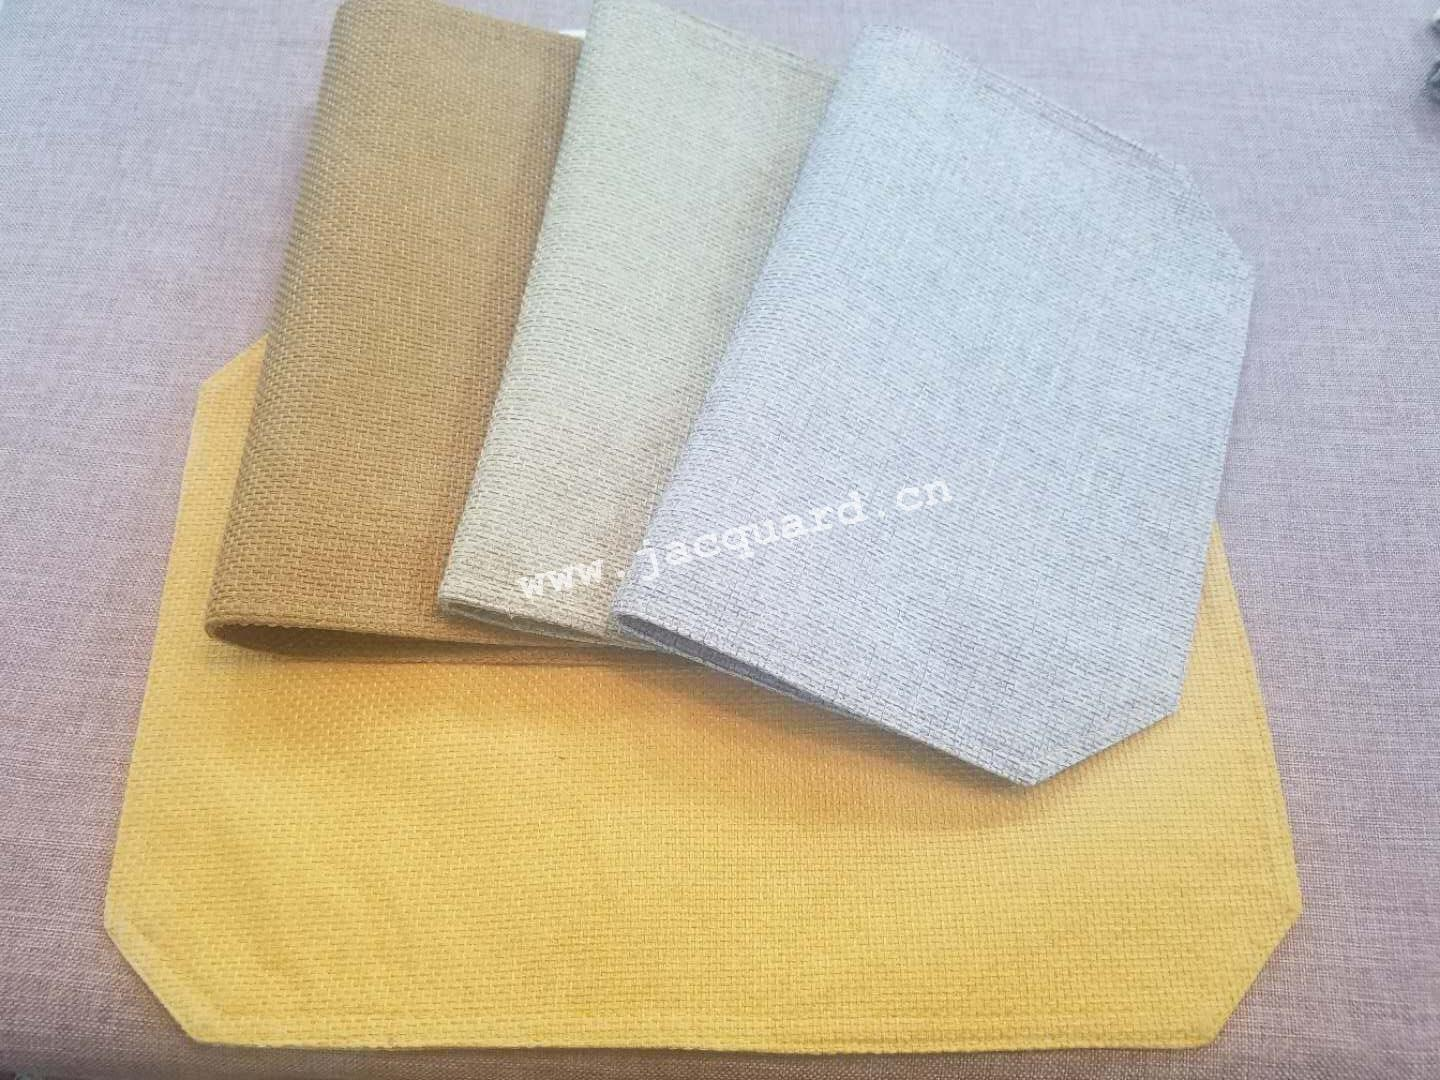 Plain Dyed Heat Insulation Table Mat Place Mat Doily for Household use